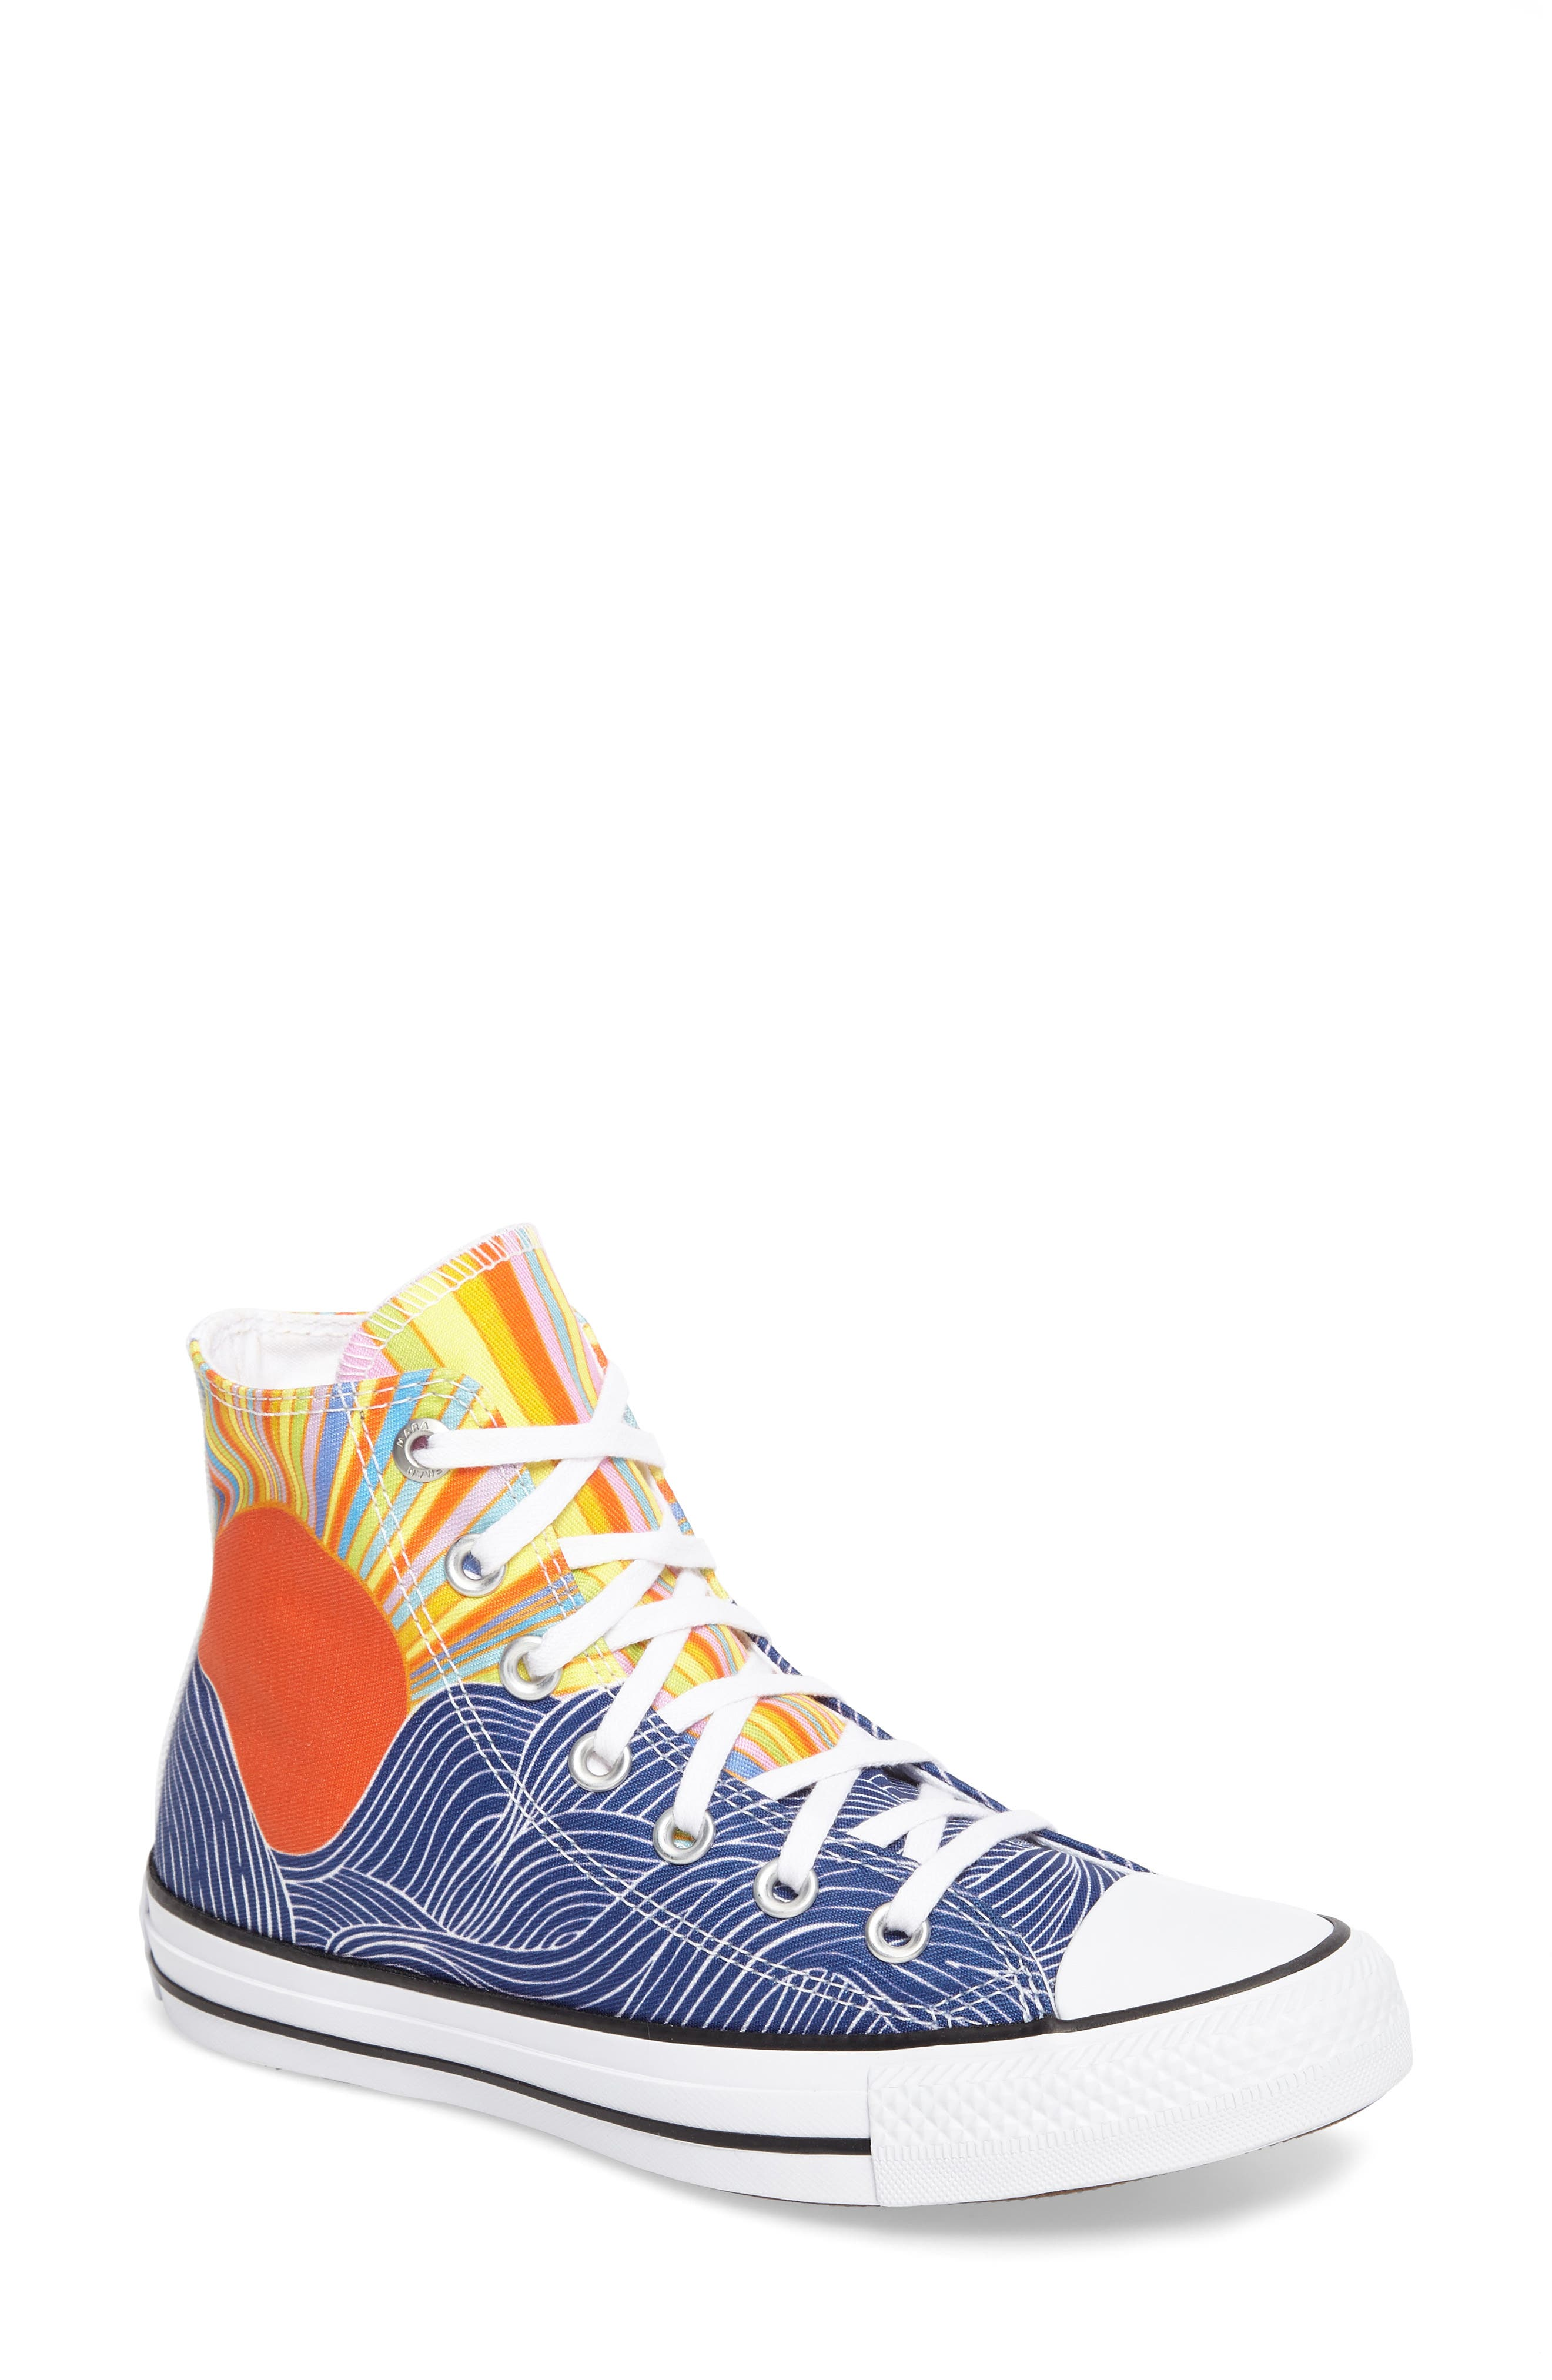 x Mara Hoffman All Star<sup>®</sup> Embroidered High Top Sneaker,                             Main thumbnail 1, color,